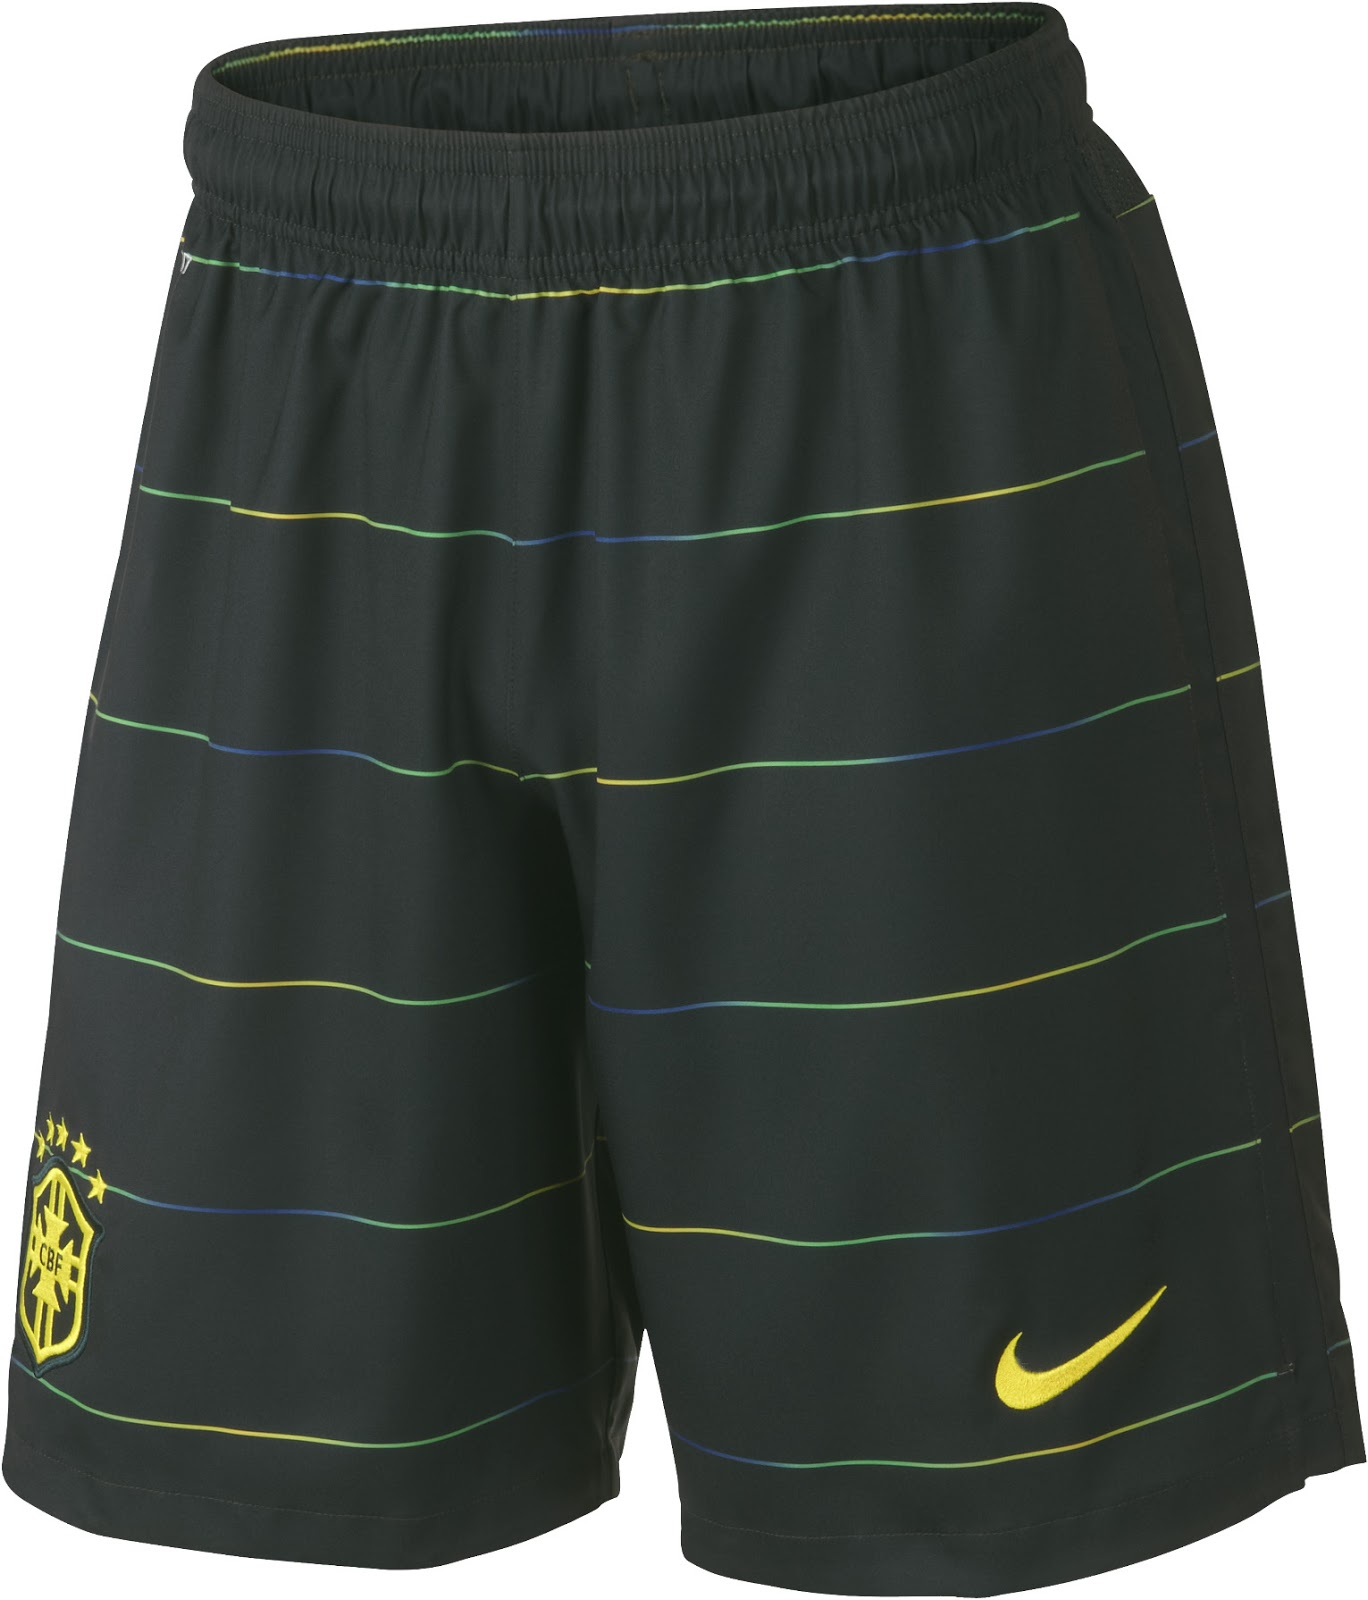 Brazil-2014-NIKE-new-third-kit-5.jpg